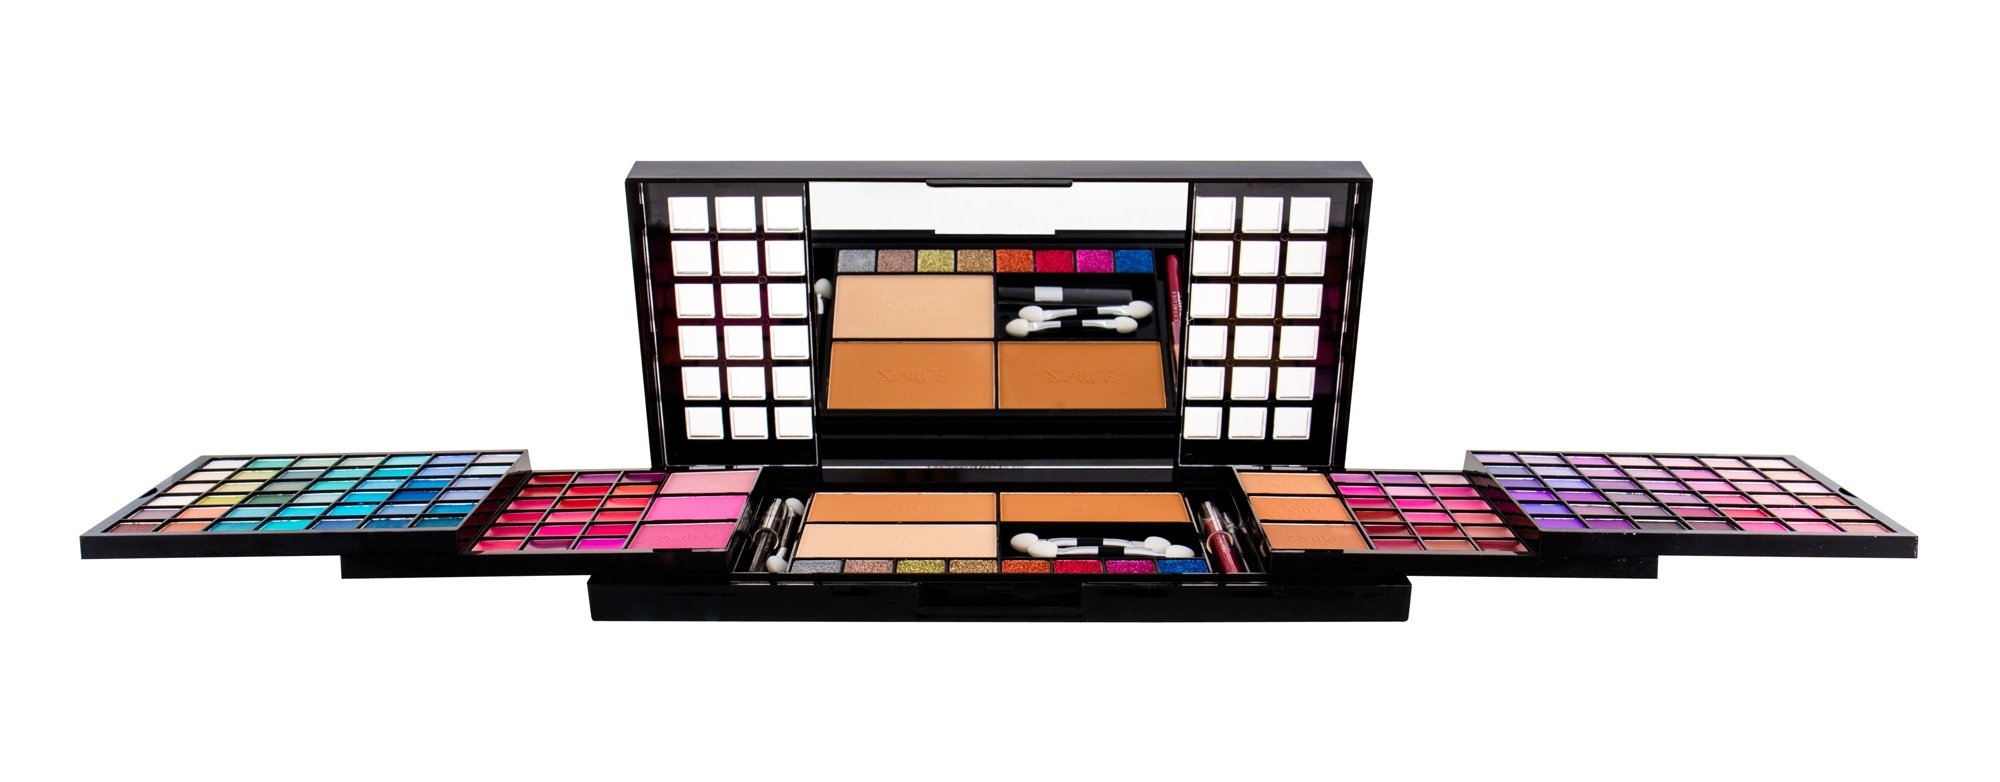 Makeup Trading XL Beauty & Glamour Palette Makeup Palette 112,3ml